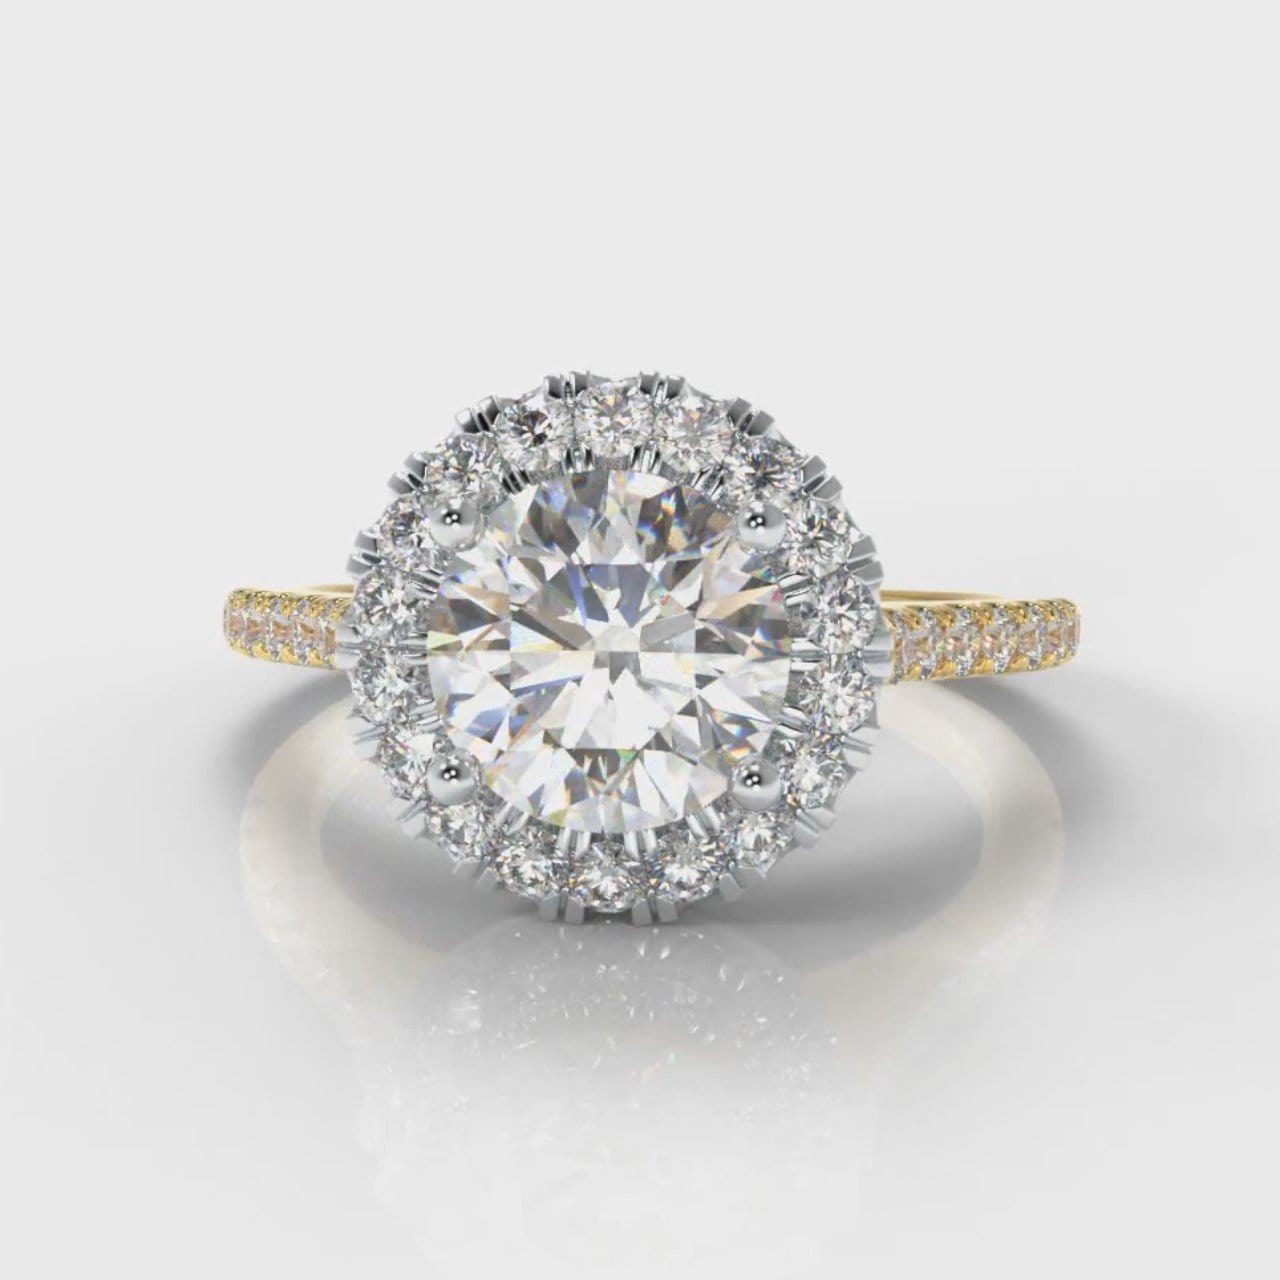 Petite Micropavé Round Brilliant Cut Diamond Halo Engagement Ring - Two Tone Yellow Gold